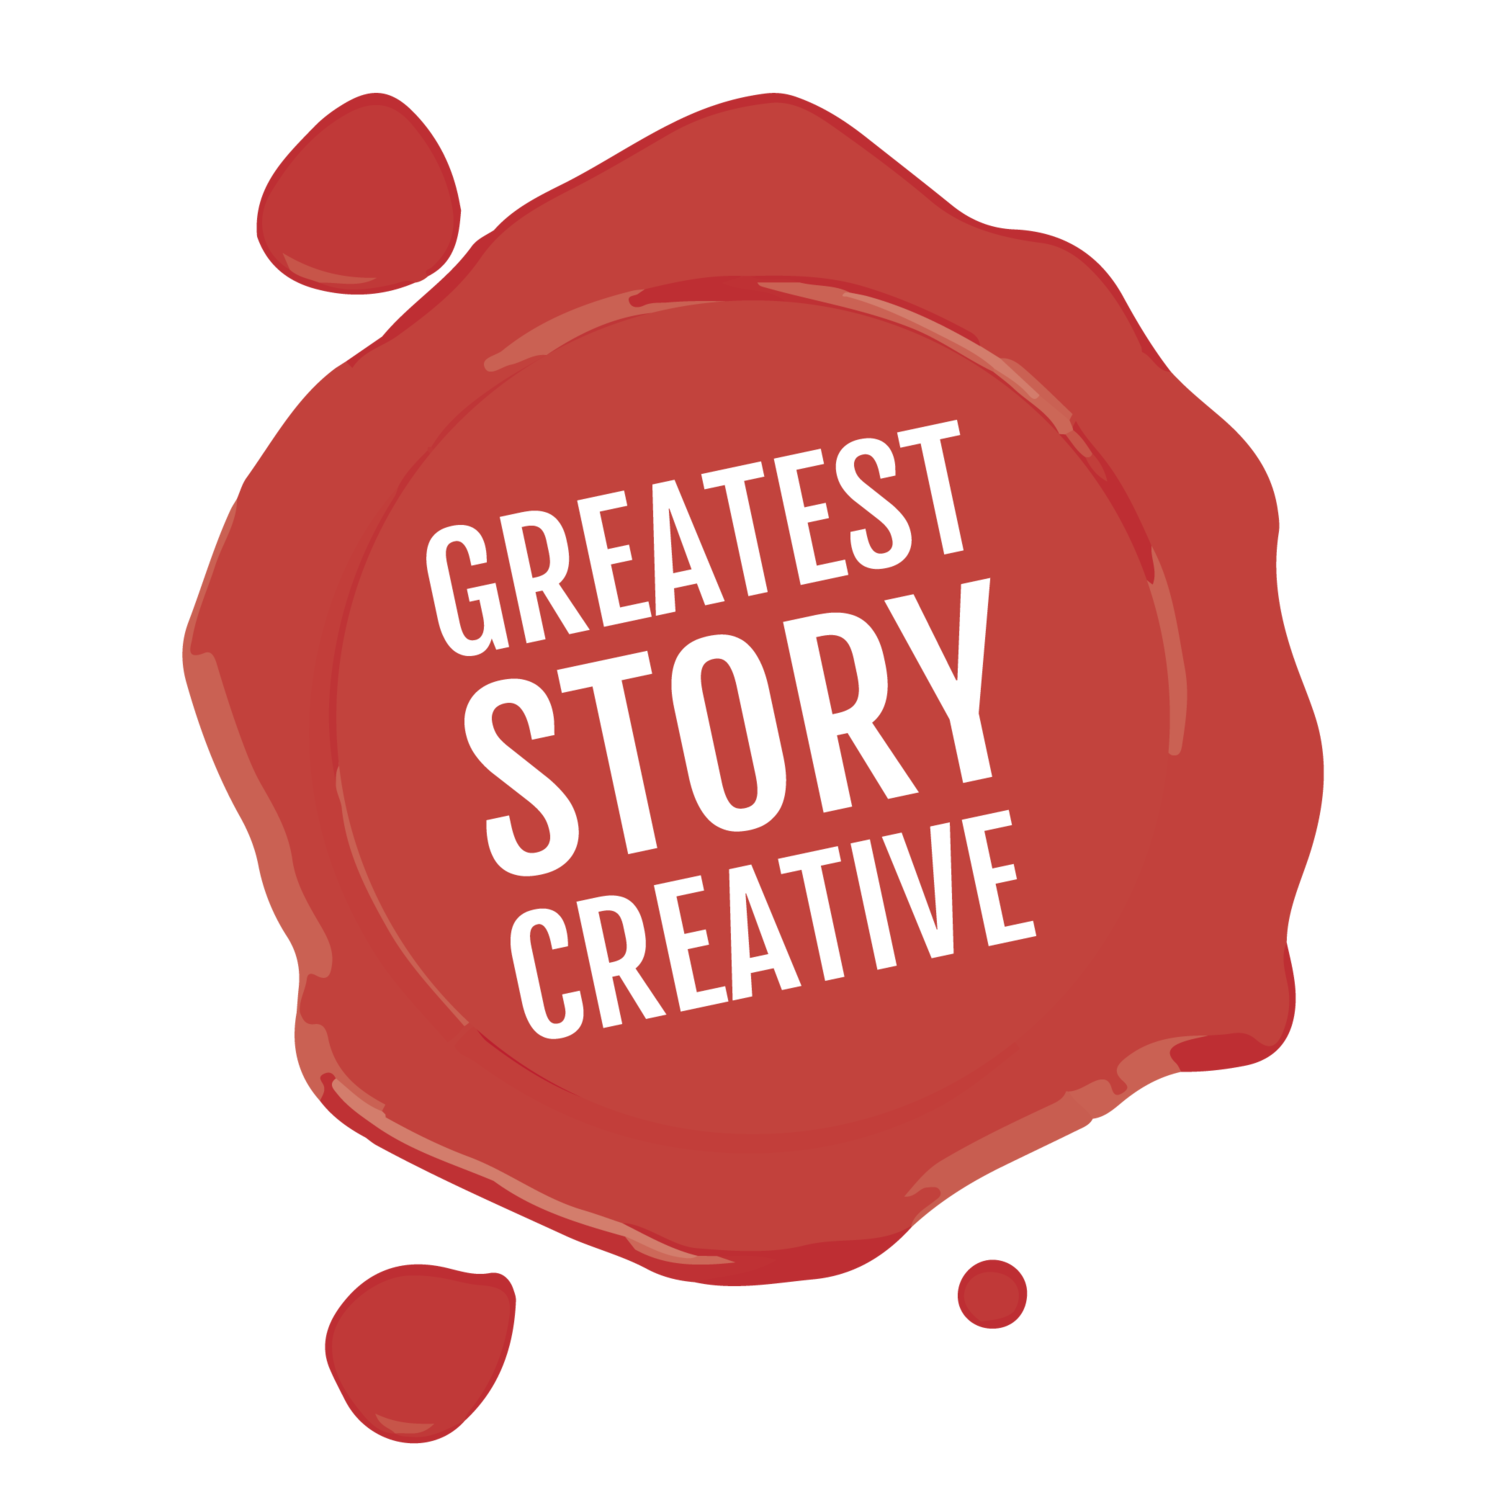 Greatest Story Creative